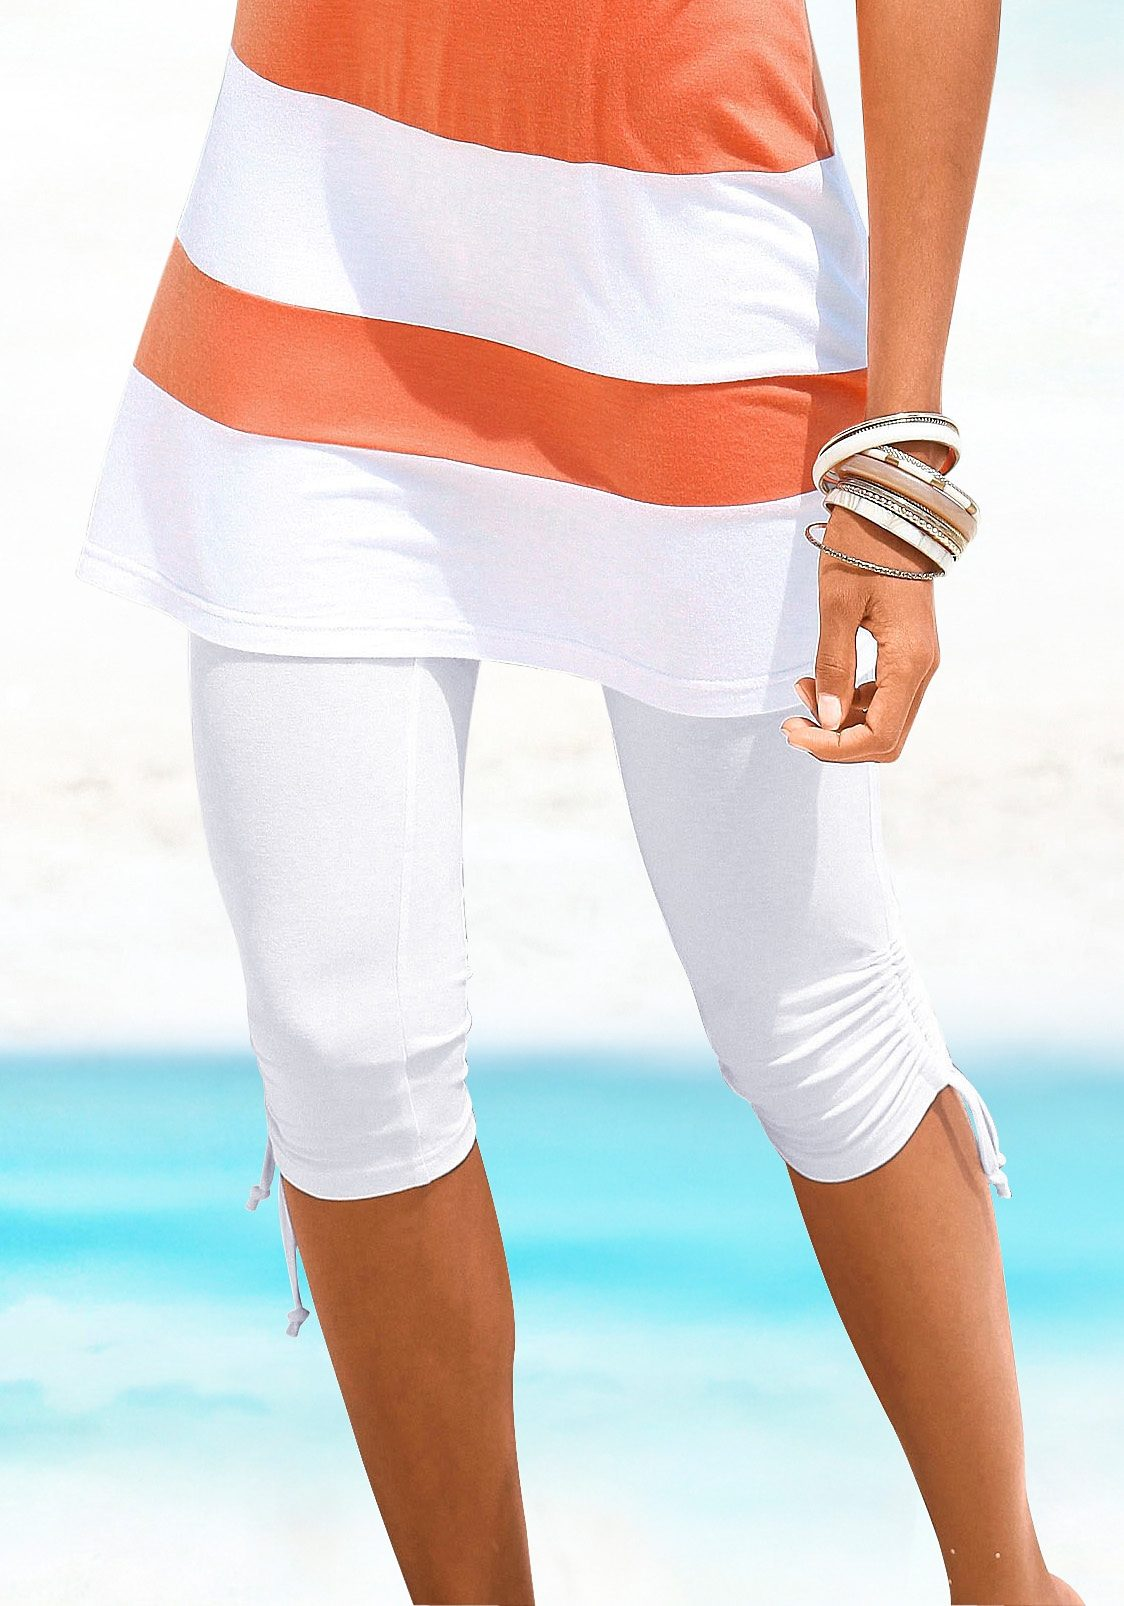 Beachtime Caprileggings